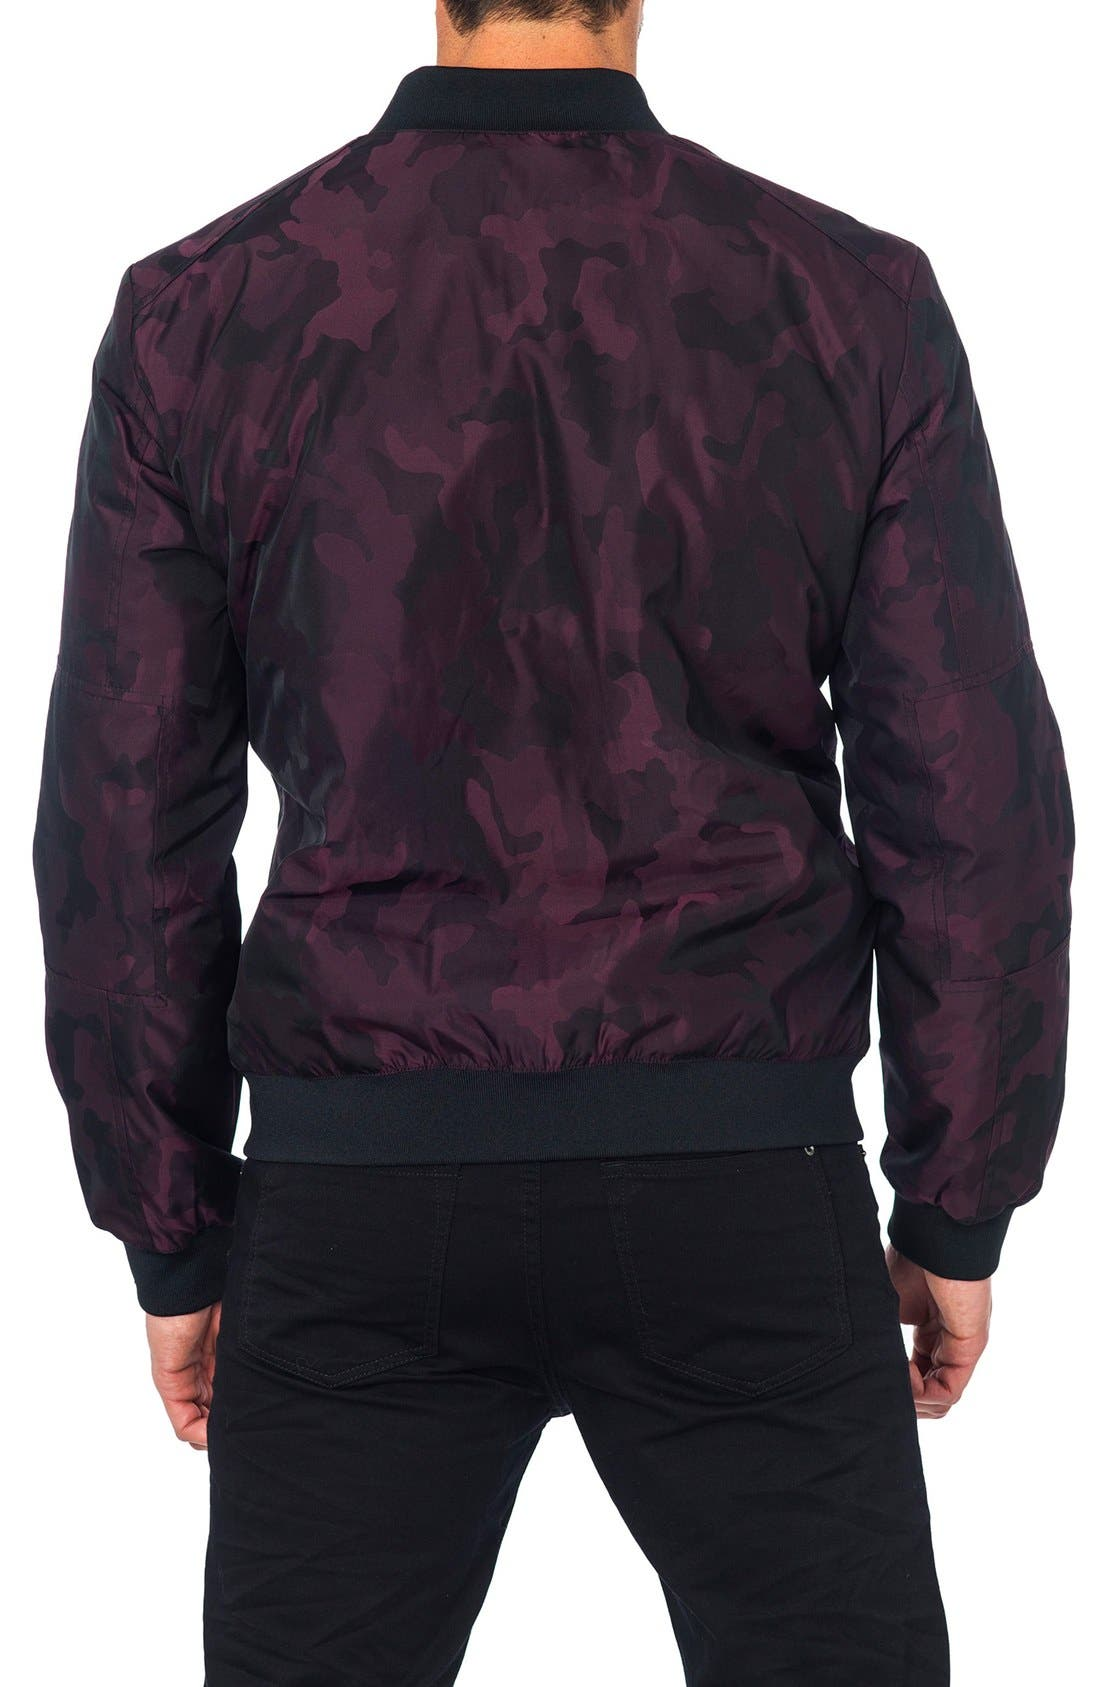 New York Reversible Bomber Jacket,                             Alternate thumbnail 2, color,                             Burgundy Camo/ Black Quilted